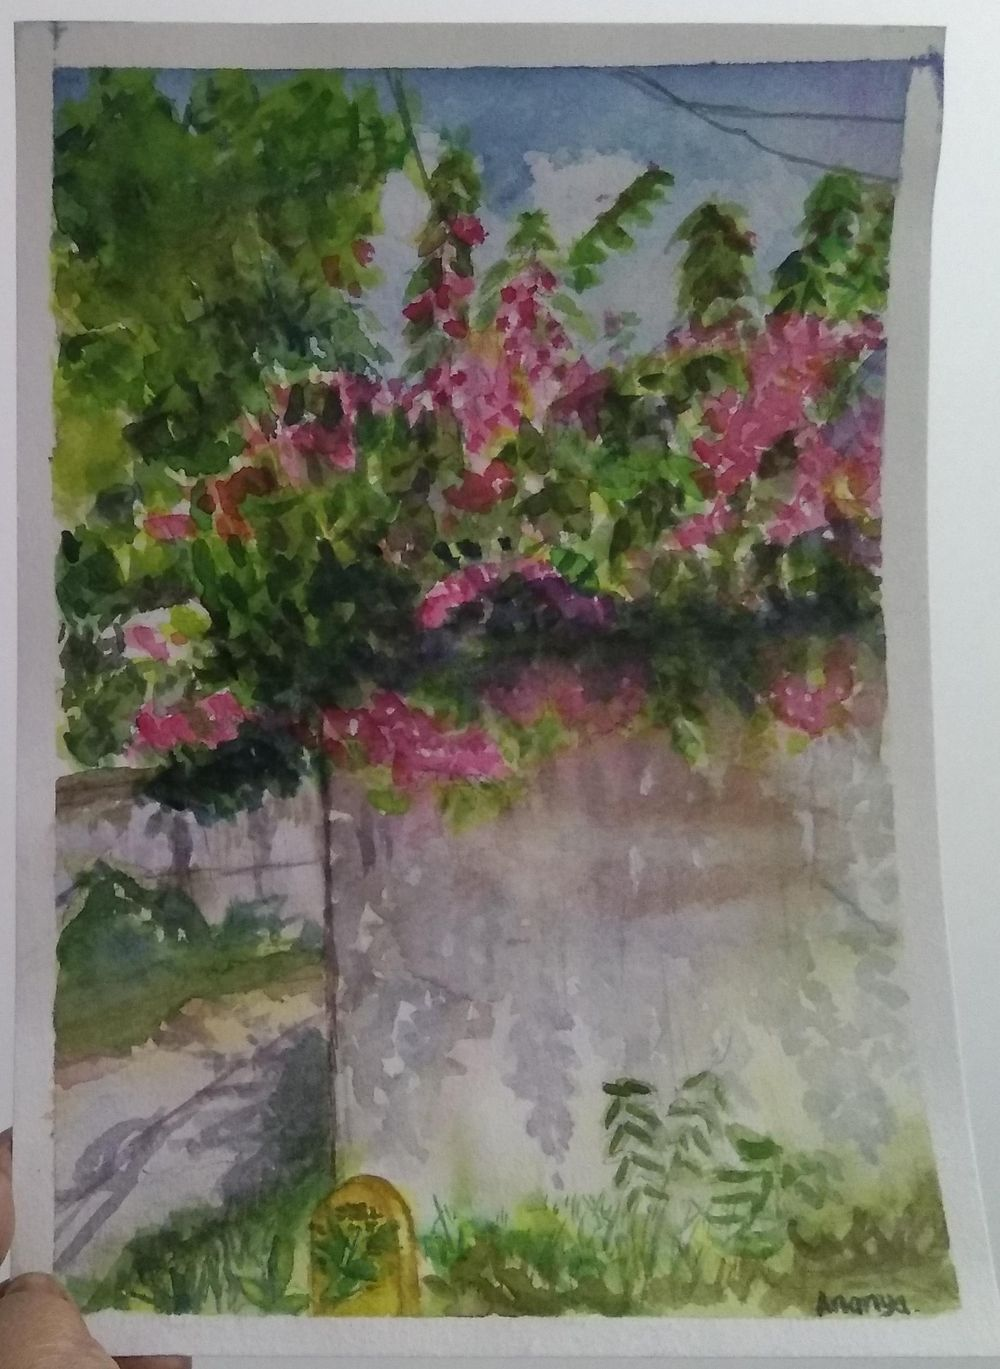 Bougainvillea on a hot summer day - image 1 - student project